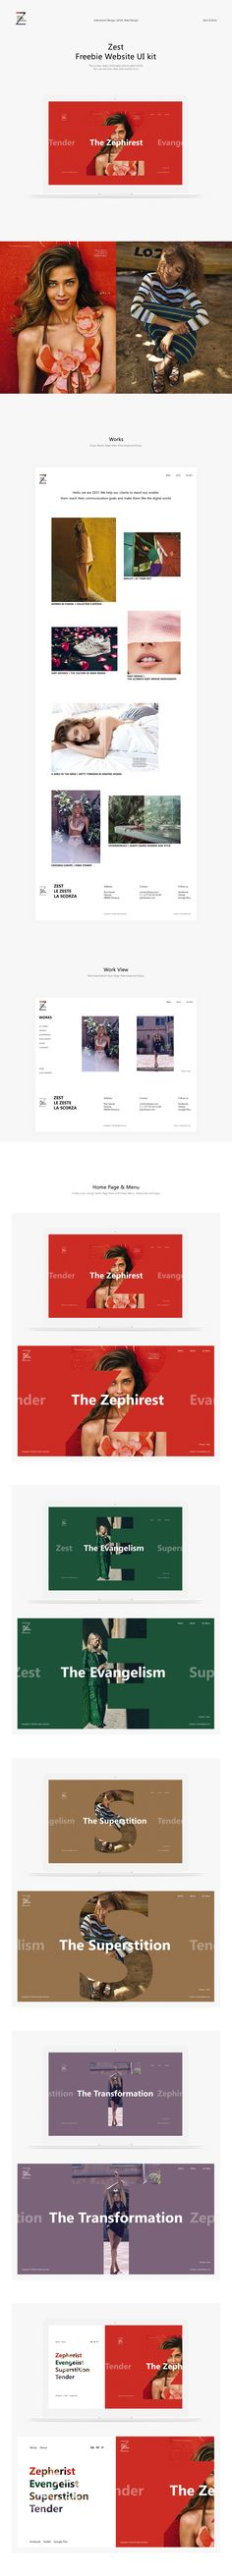 Zest: A free PSD template for photography on Behance